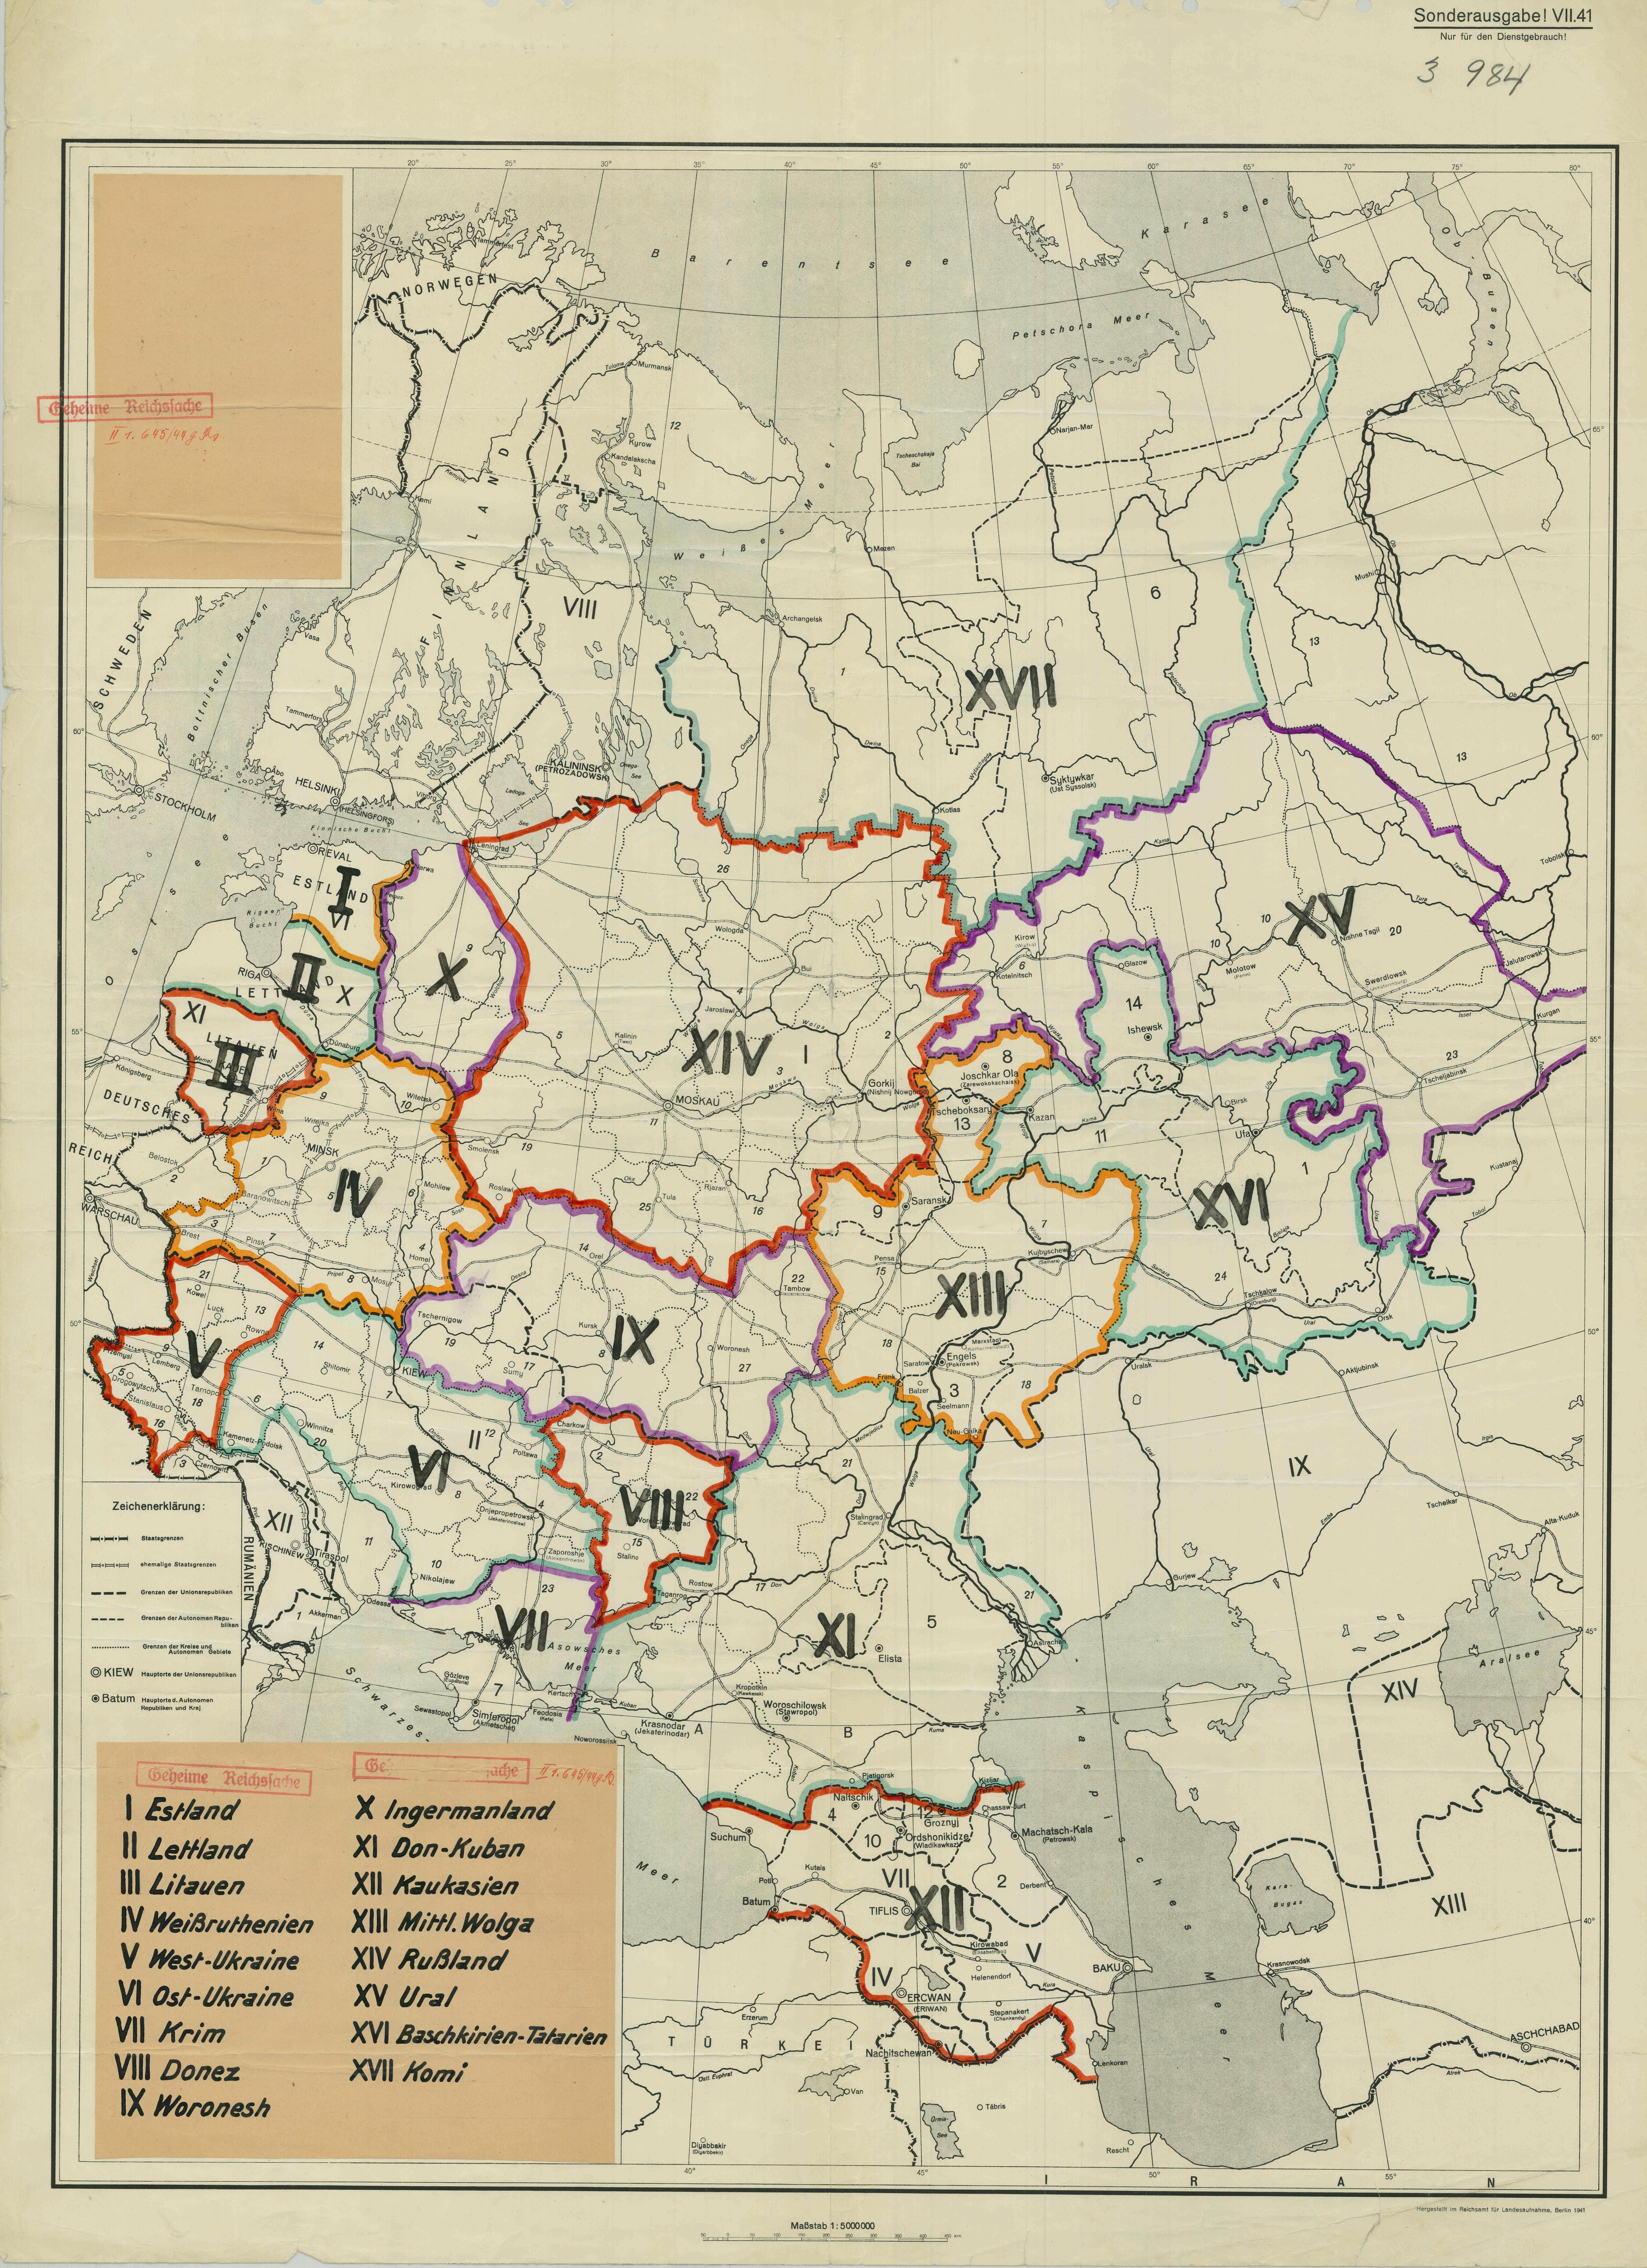 Recently Opened Series German World War II Maps The Unwritten - Germany map ww2